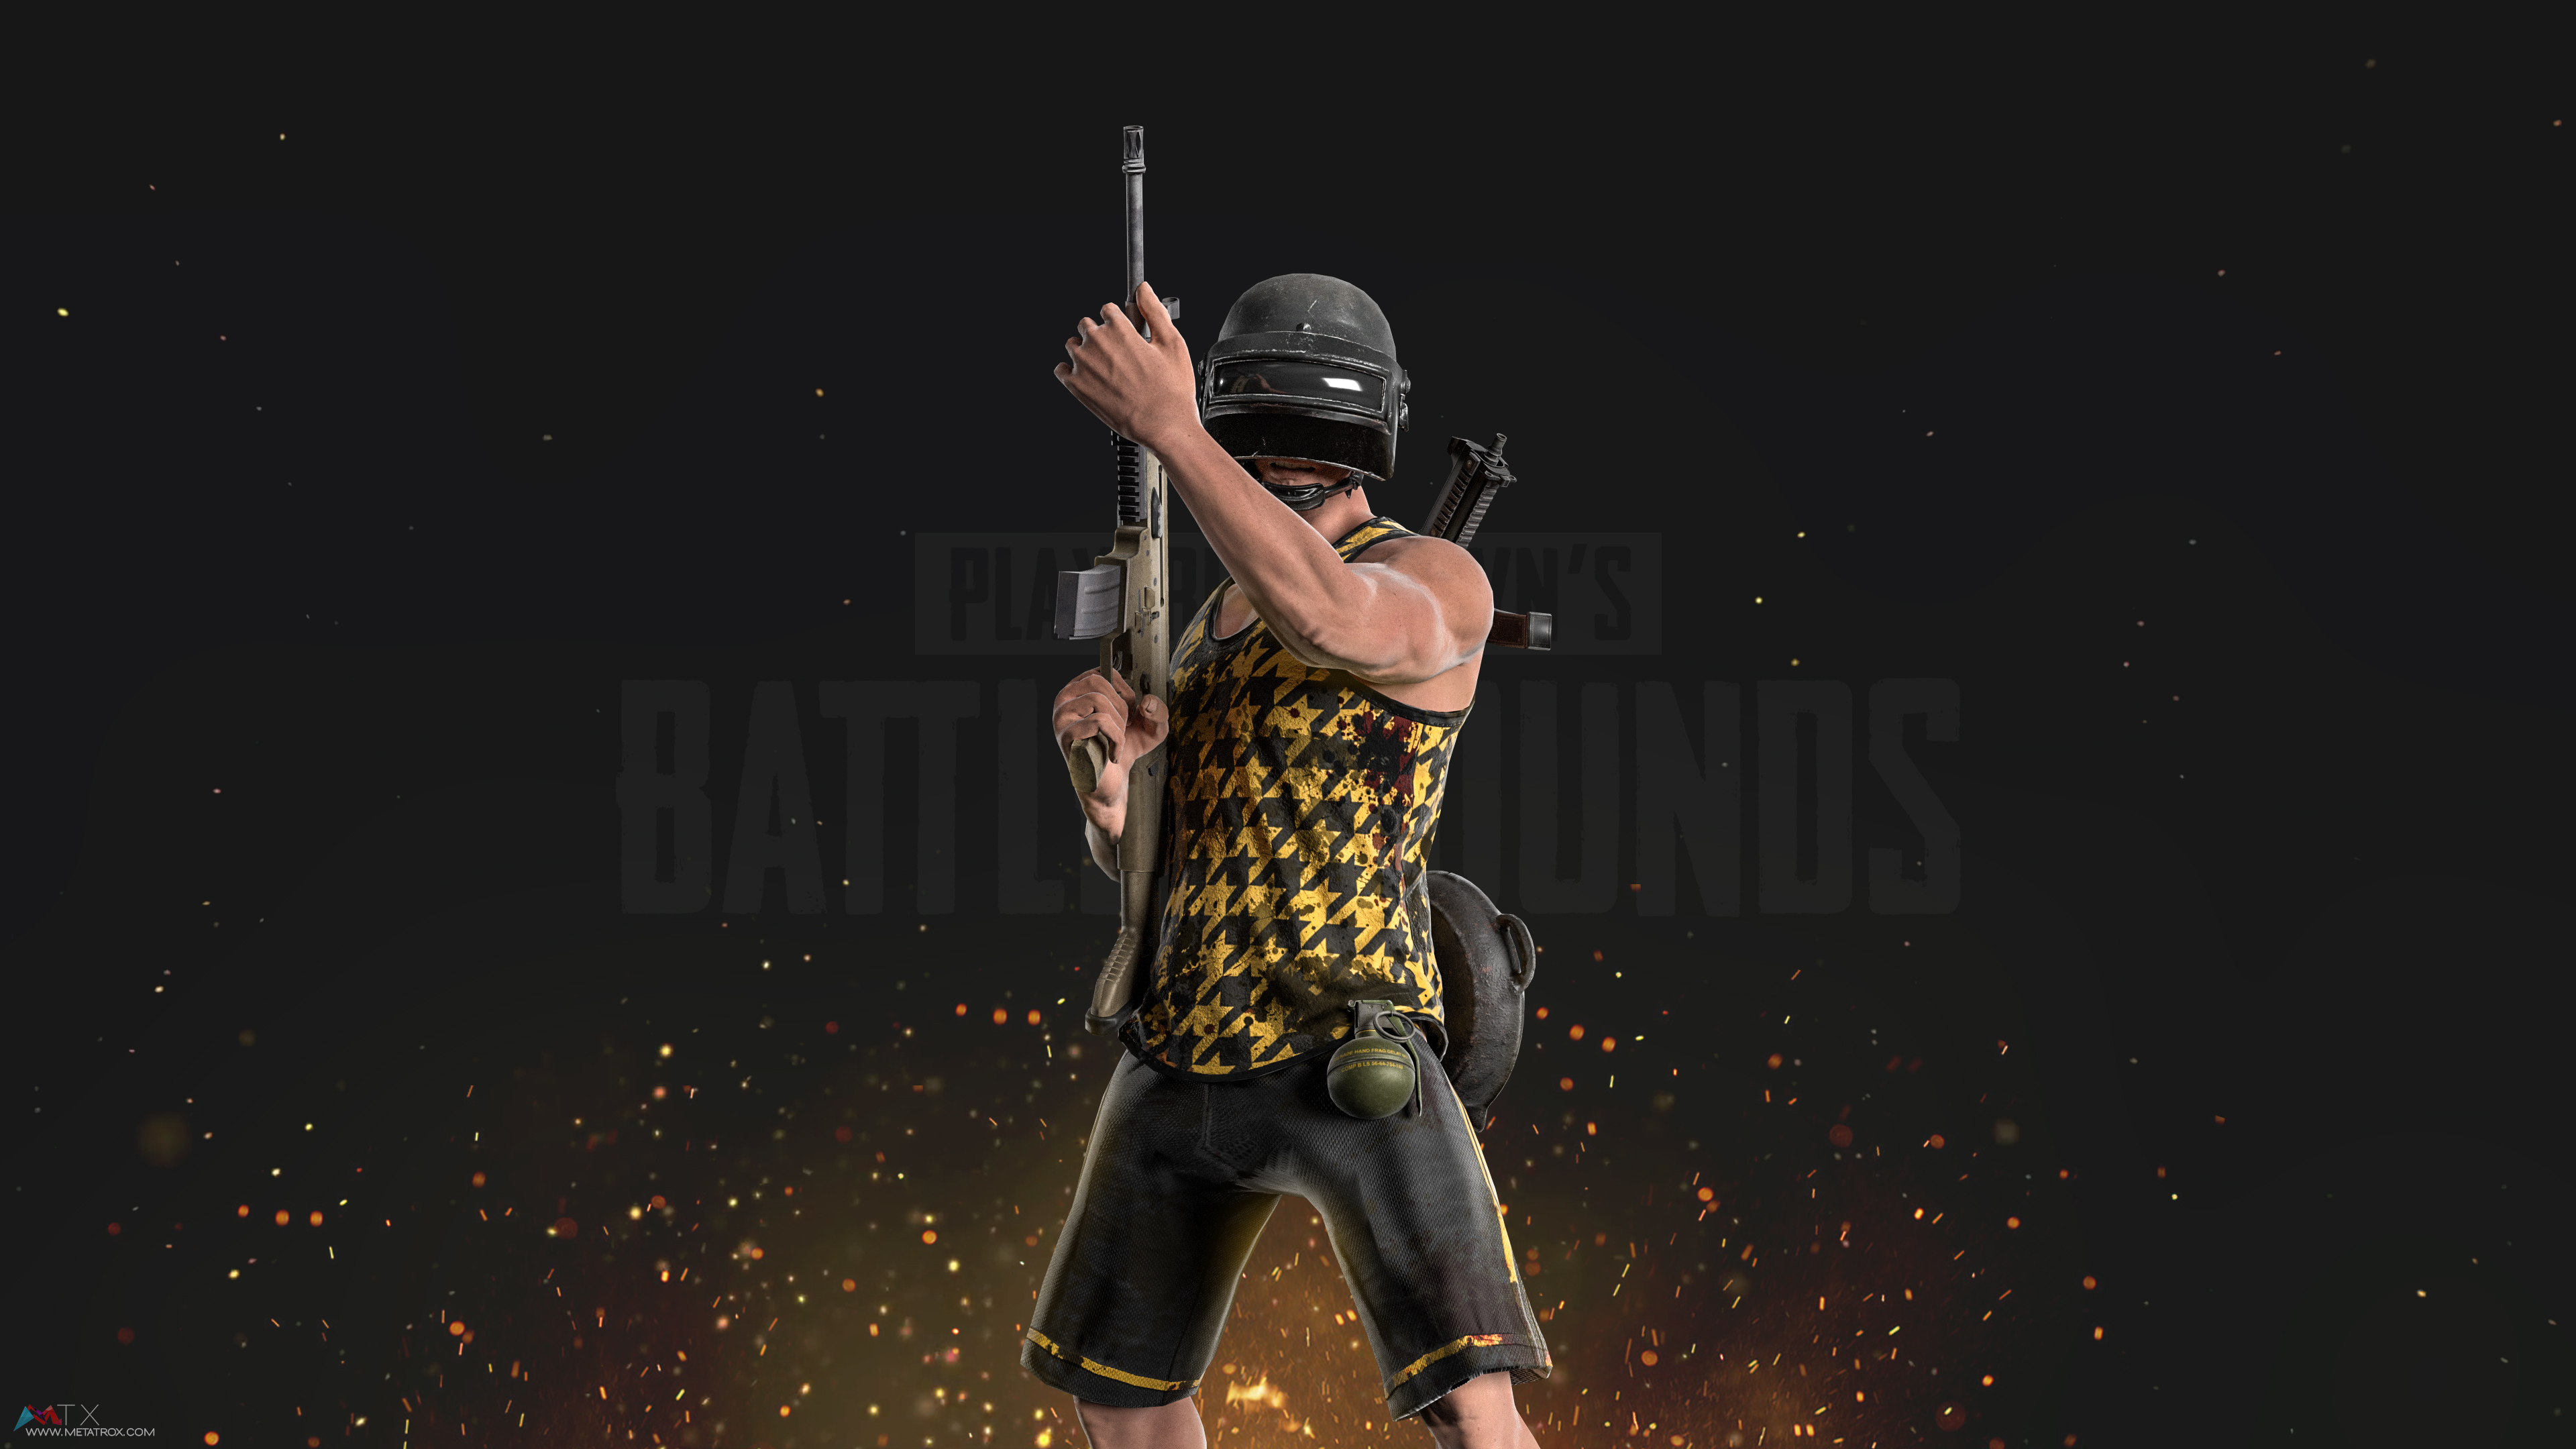 Pubg Helmet Guy With Girls And Guns 4k Hd Games 4k: Pubg, HD Games, 4k Wallpapers, Images, Backgrounds, Photos